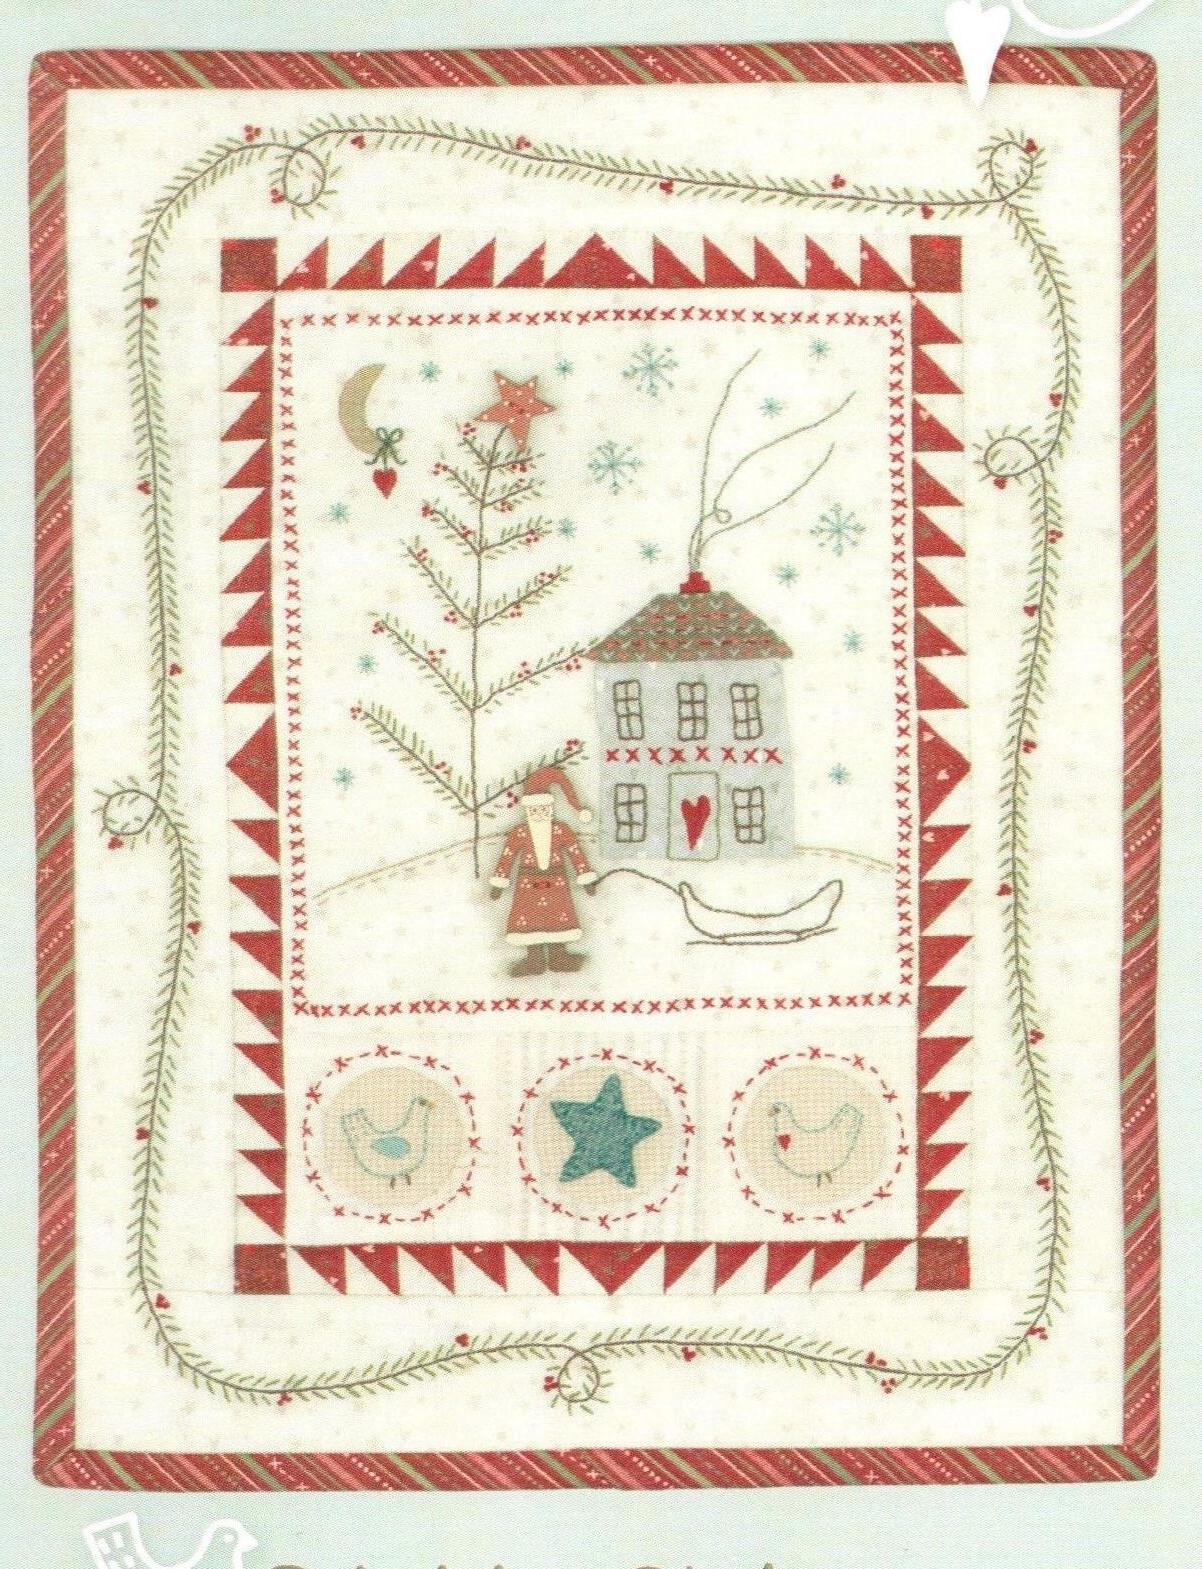 Christmas Hand Embroidery Patterns Primitive Christmas Quilt And Embroidery Pattern With Hand Painted Jolly Santa Button Pack